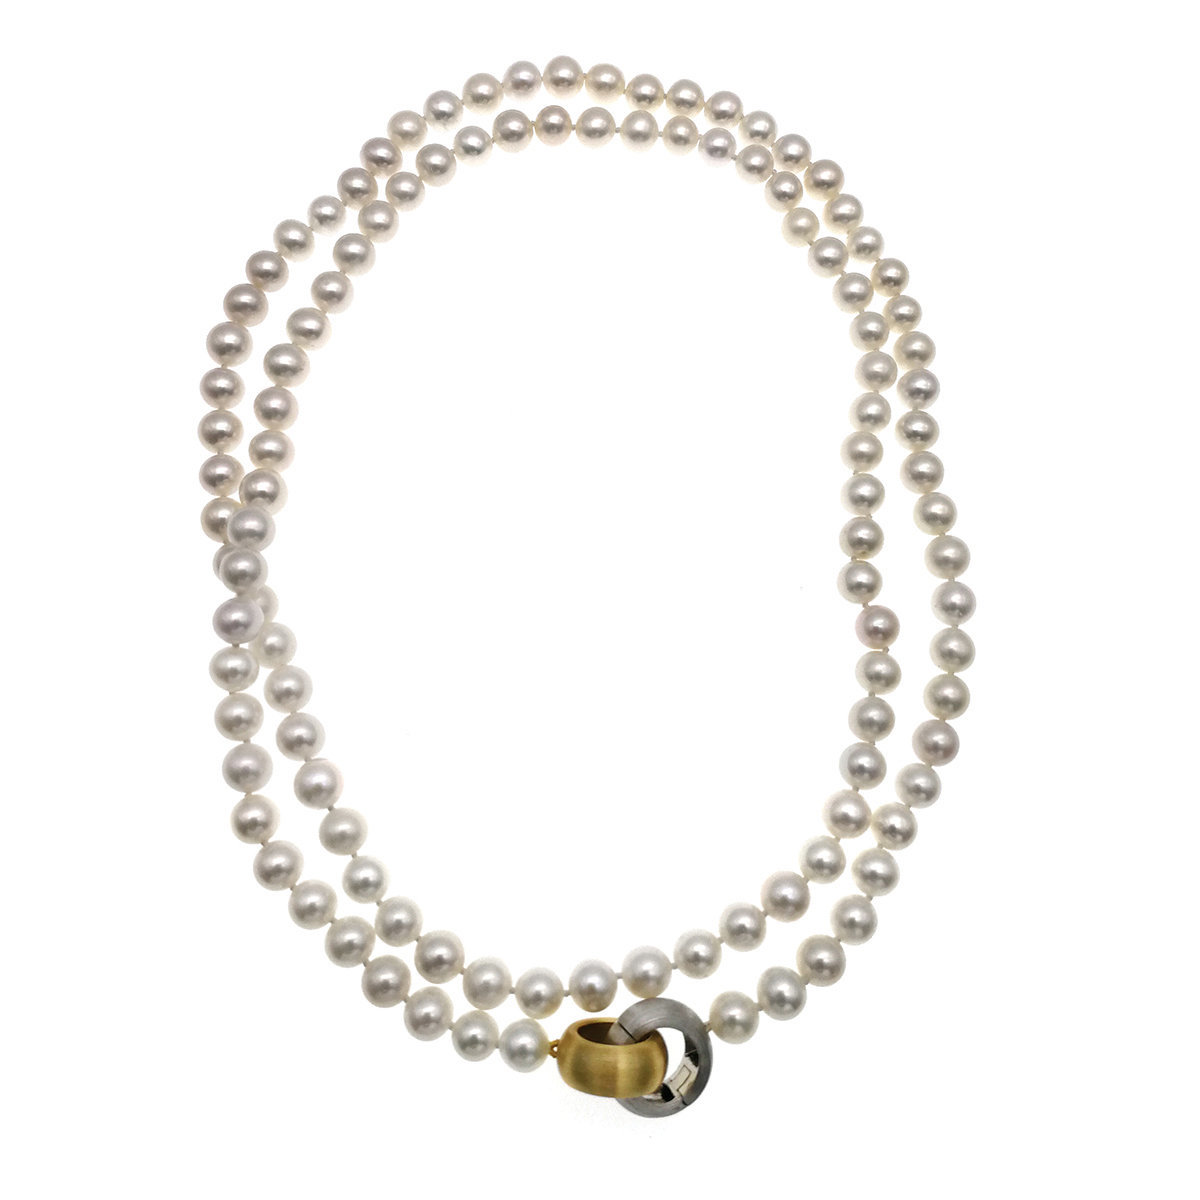 Infinity- 7-8mm Cultured fresh water pearl with 925 silver necklace